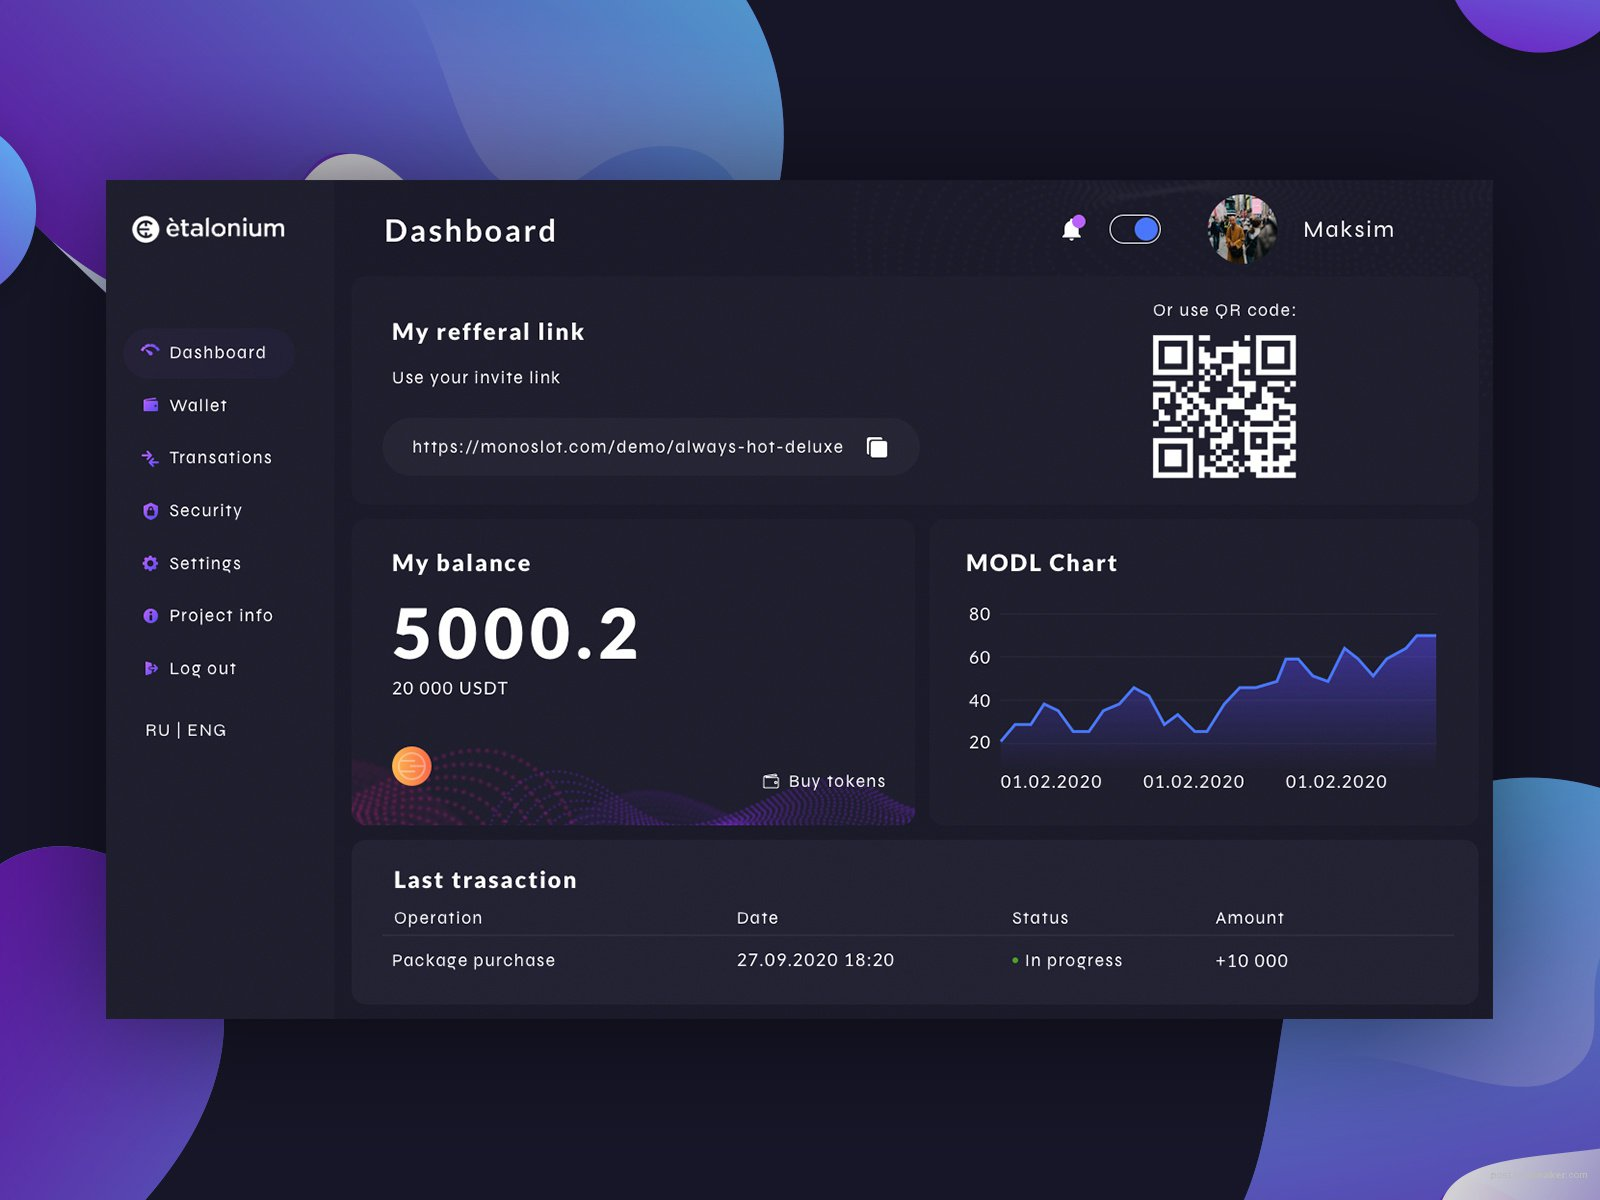 Dasboard for Cryptocyrrency